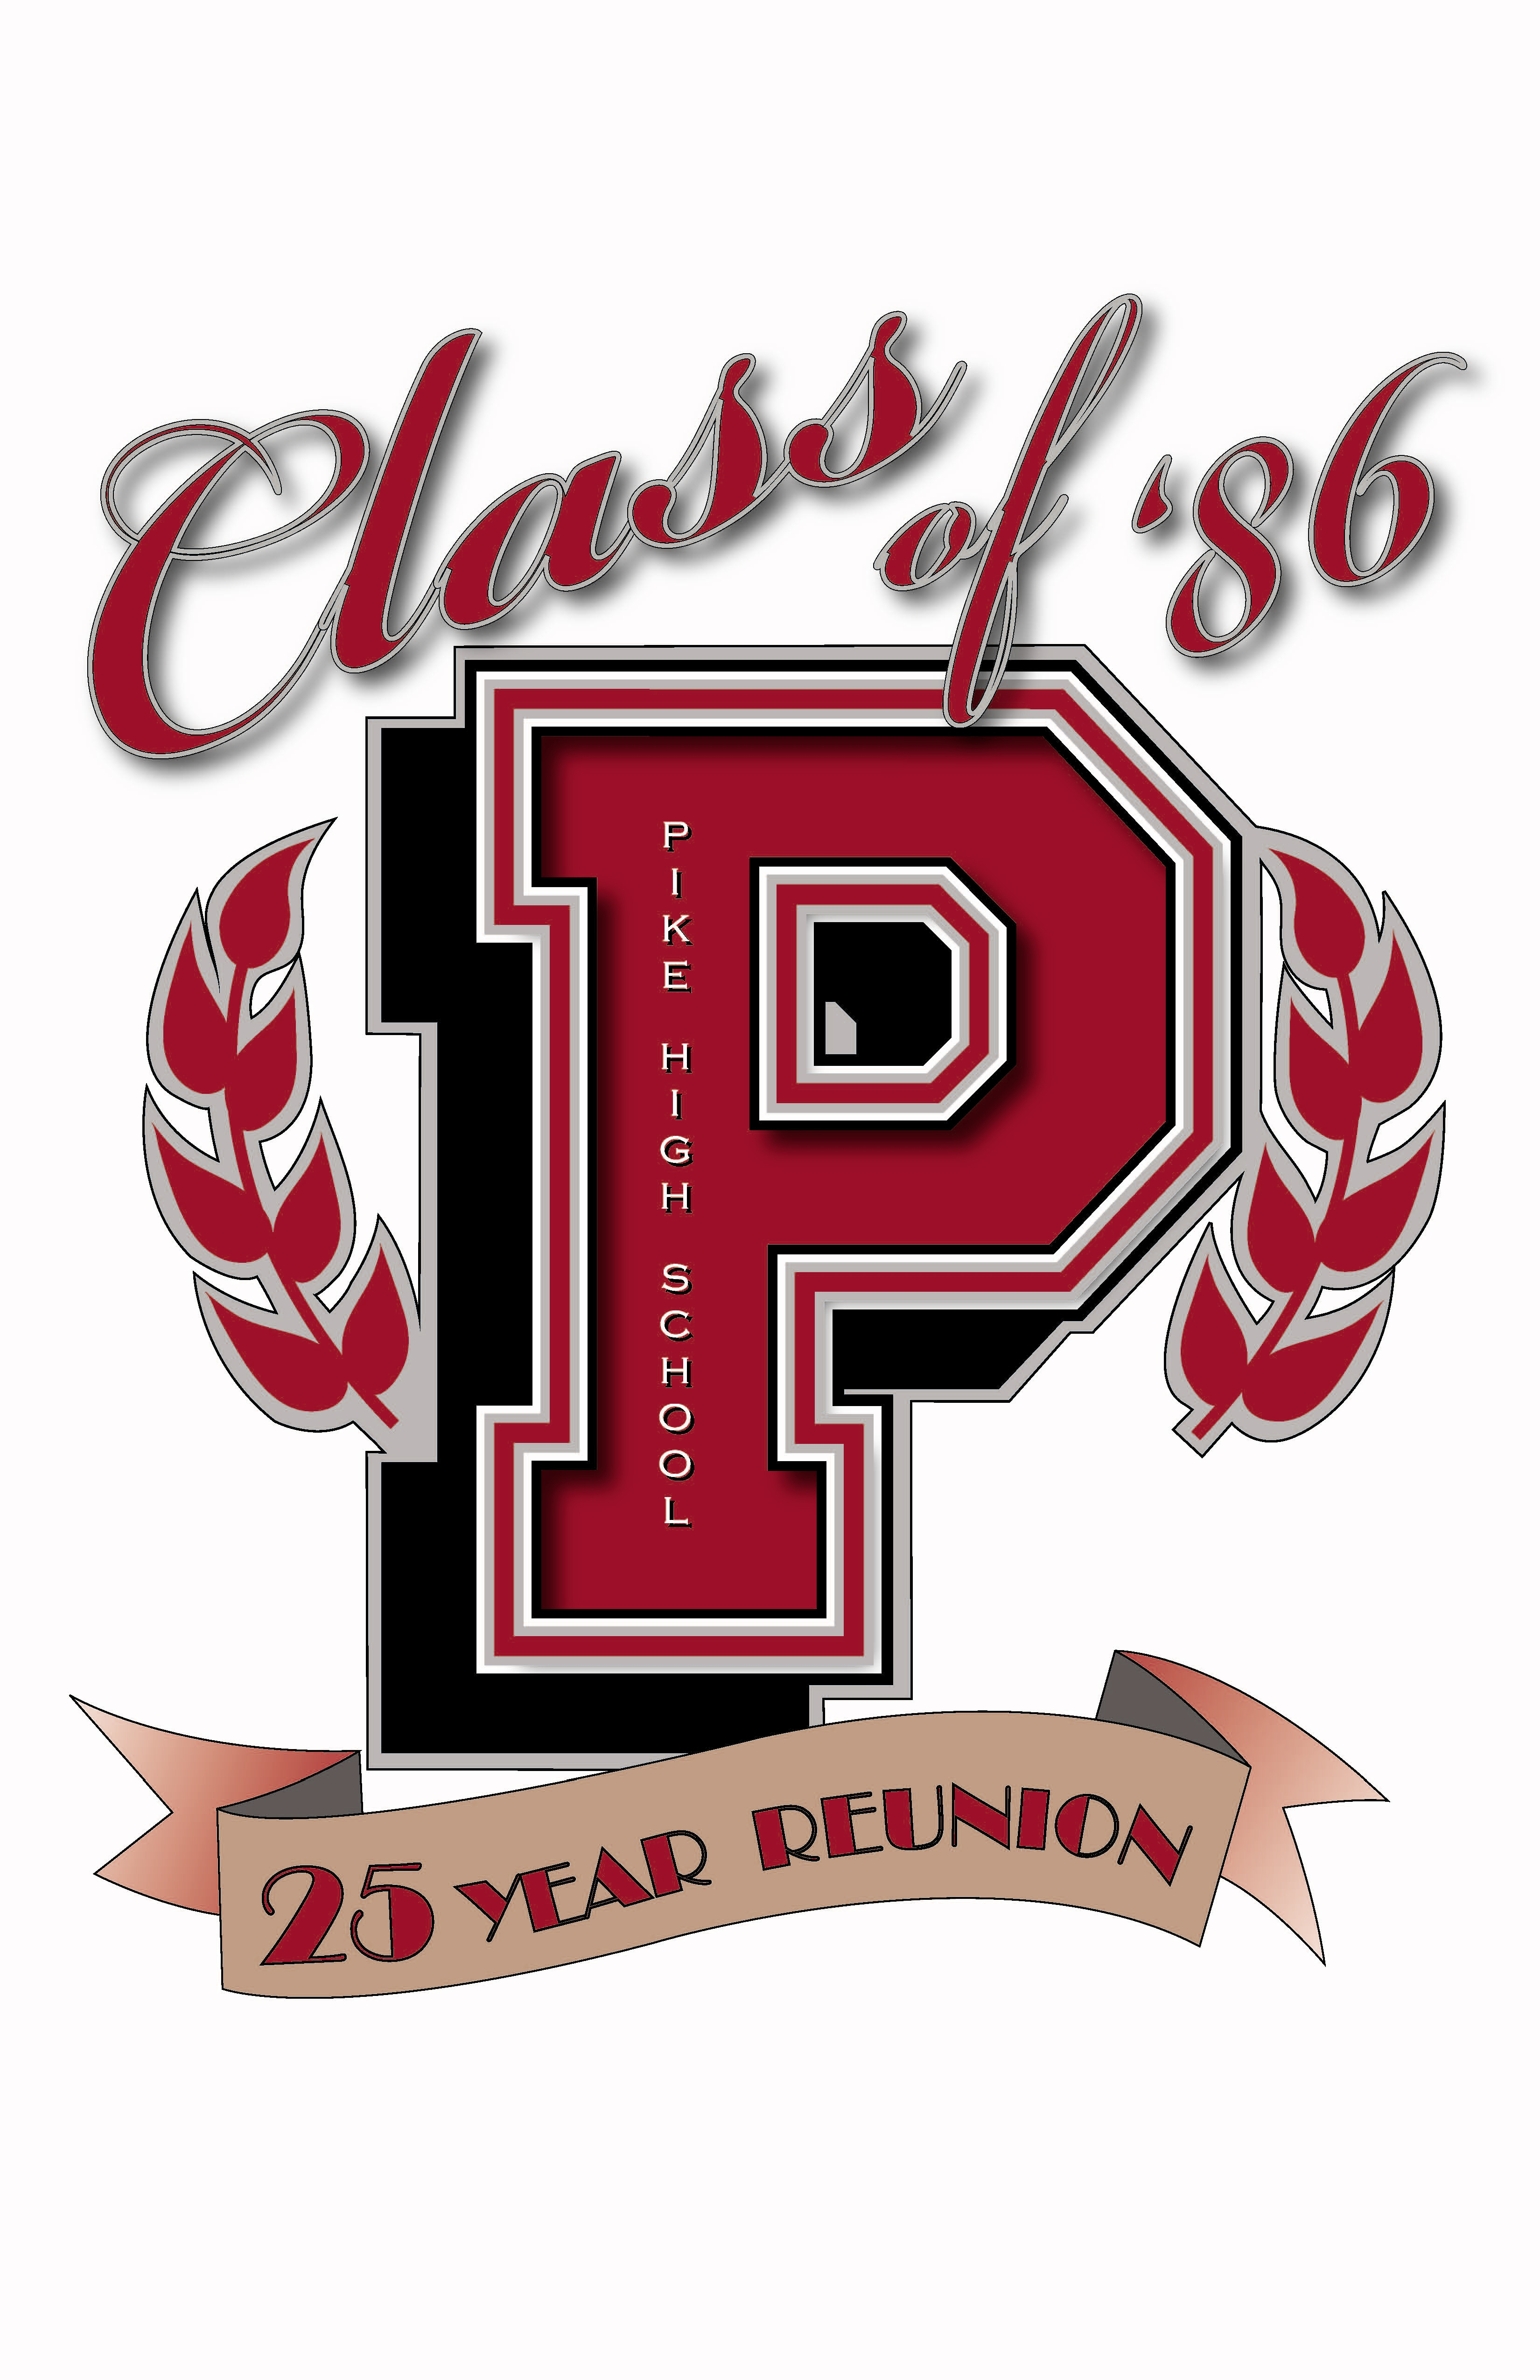 Design t shirt for class - Pike High School Class Of 86 Logo Design Logo Design For My 25th Class Reunion For T Shirt And Hats